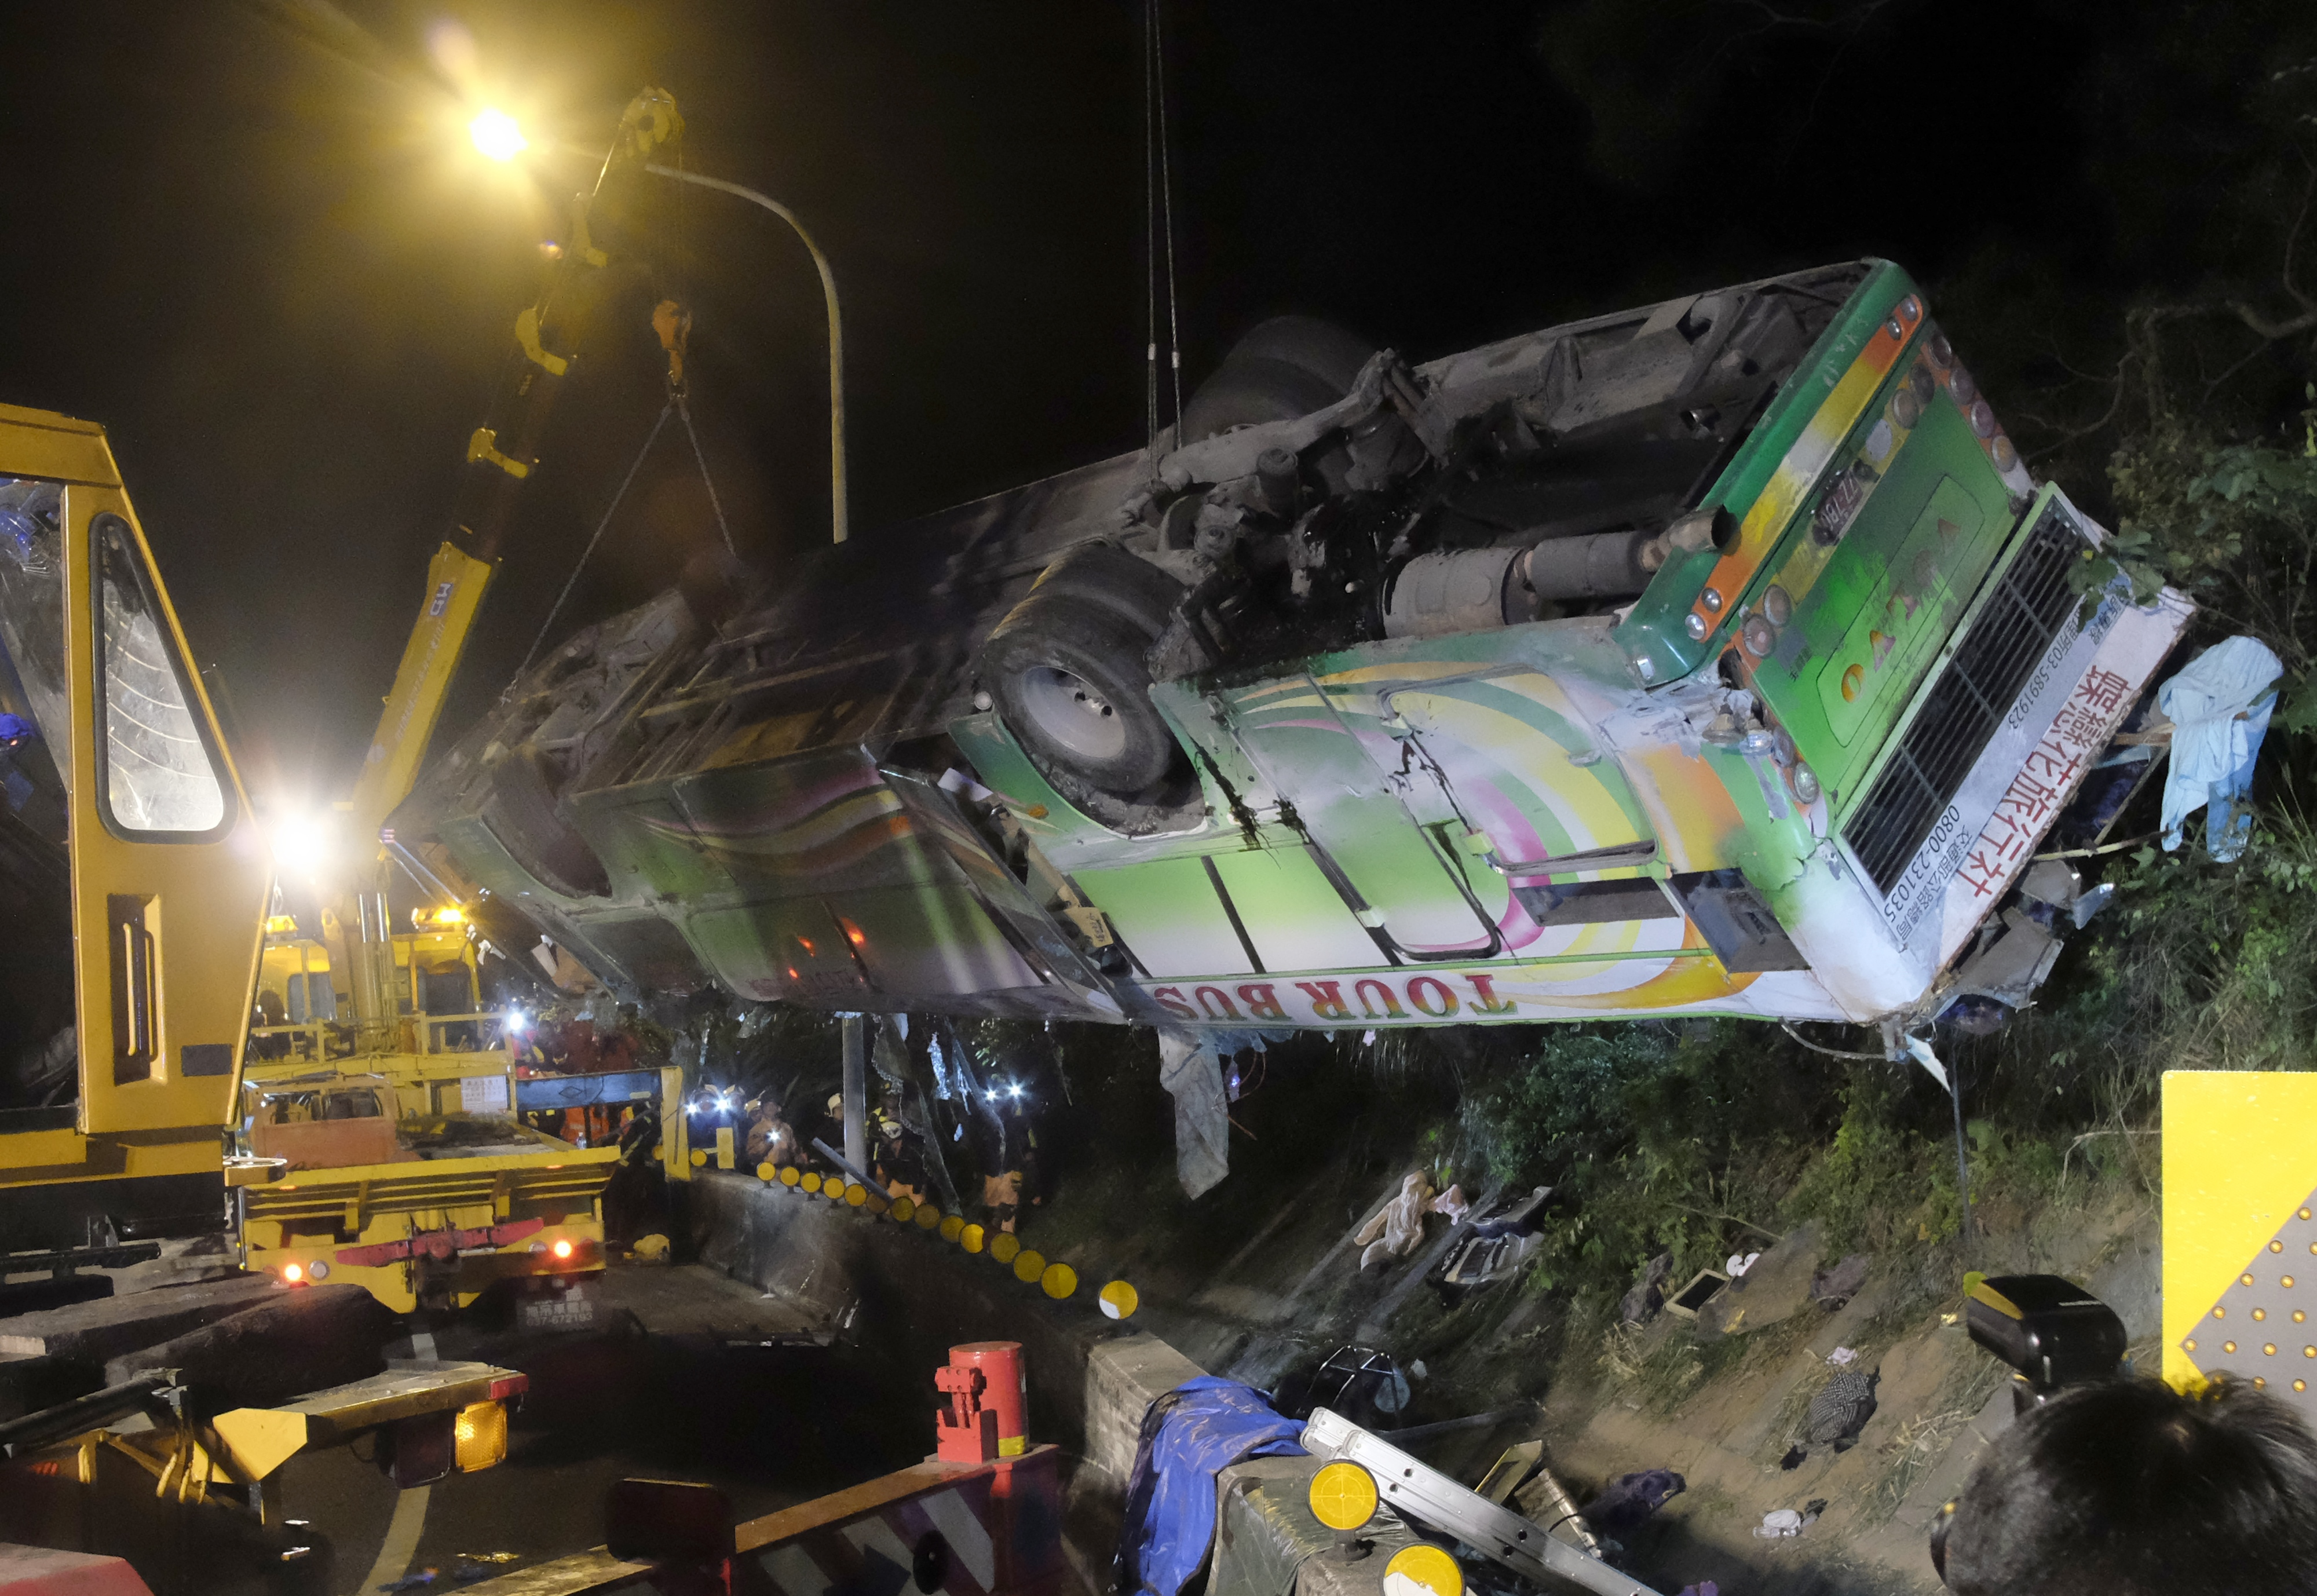 Wreckage of the crashed bus being lifted by cranes, overnight in Taipei on Feb. 14, 2017.